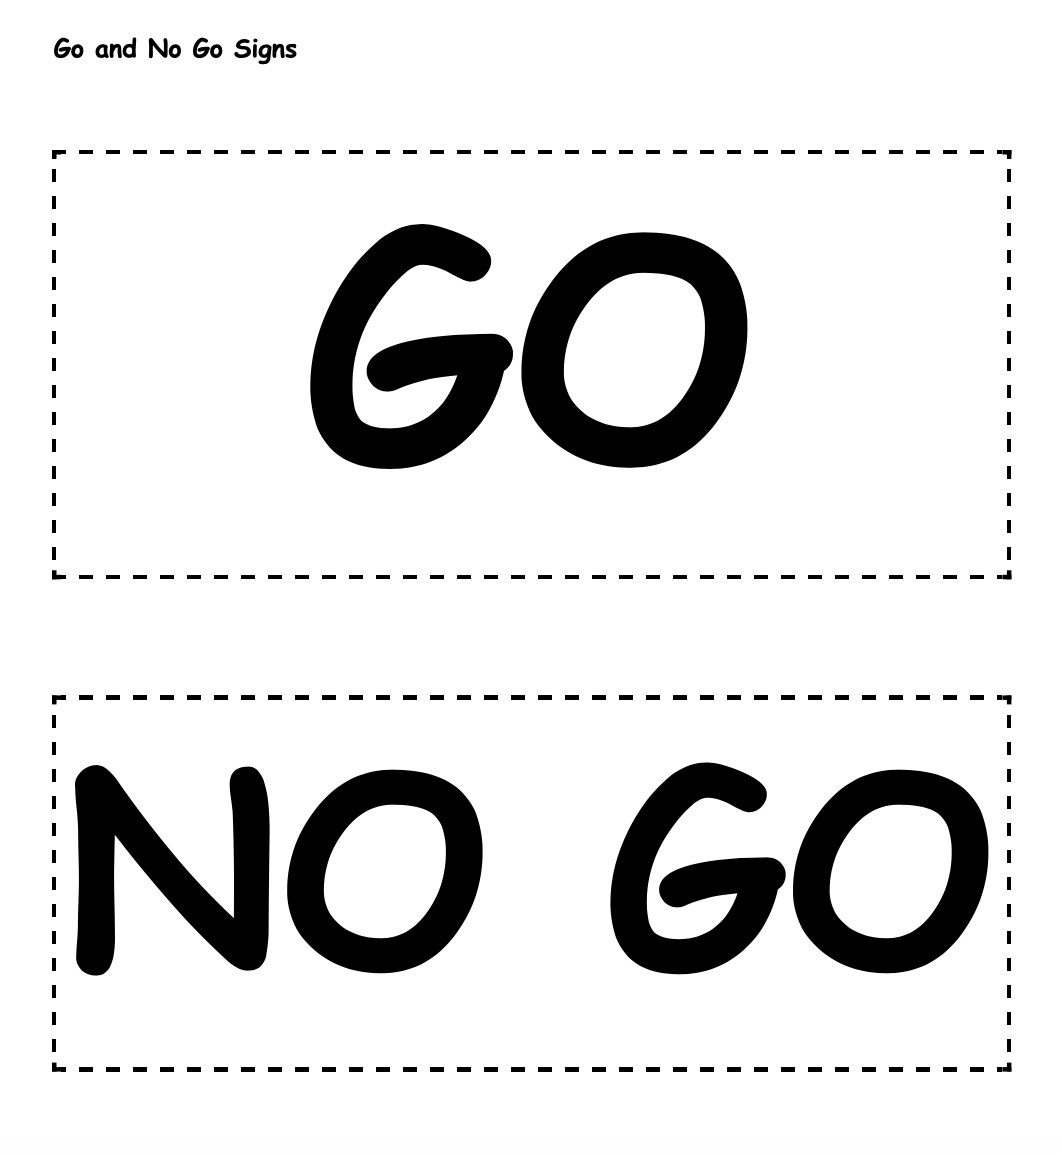 Go and No Go Signs